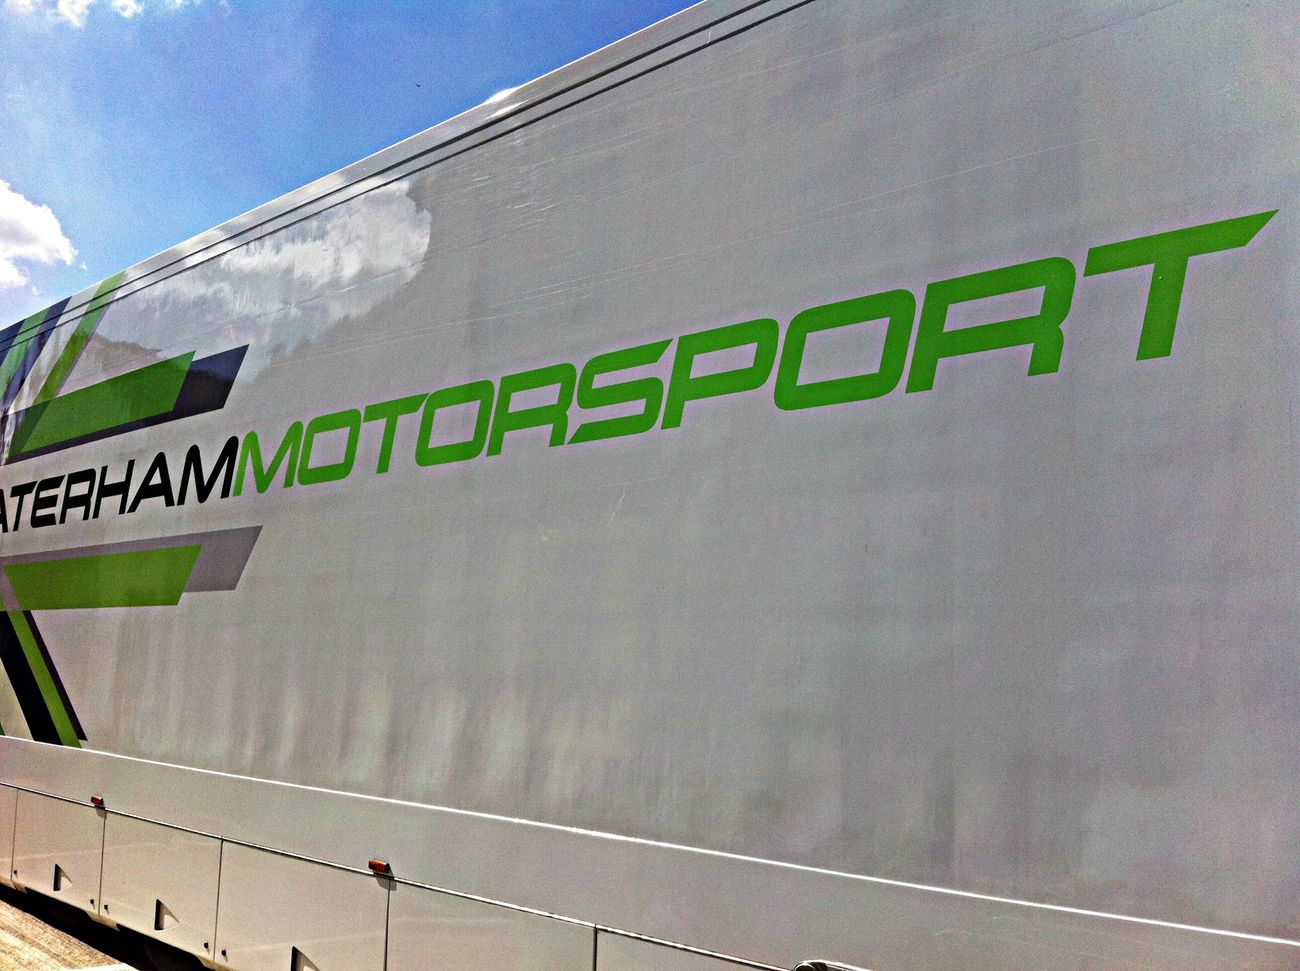 Home of Motorsport Working